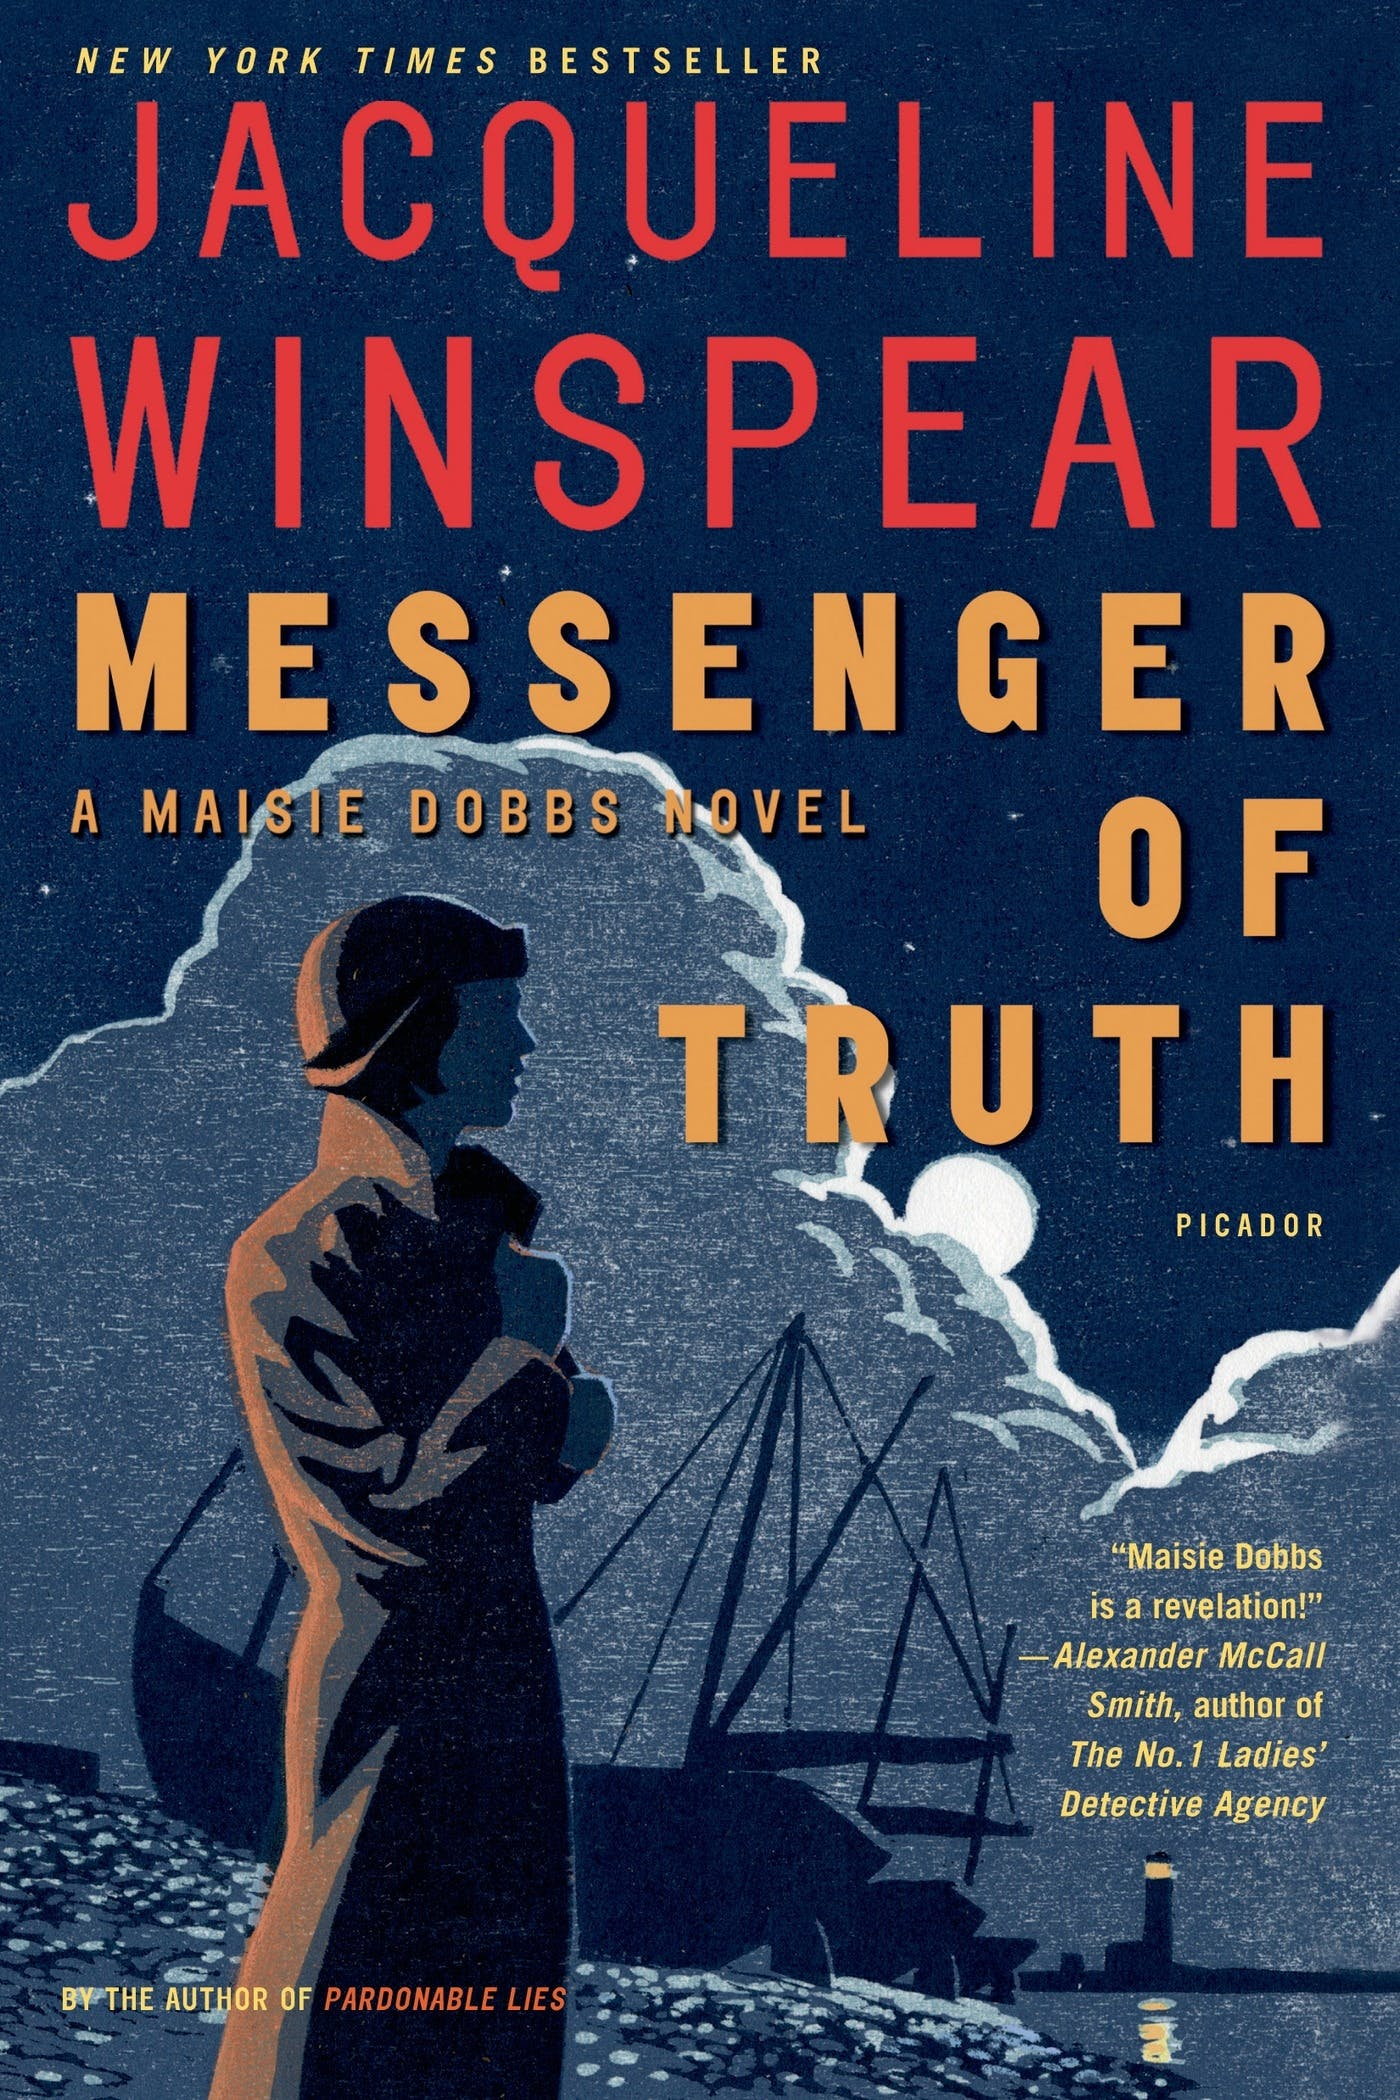 Image of Messenger of Truth